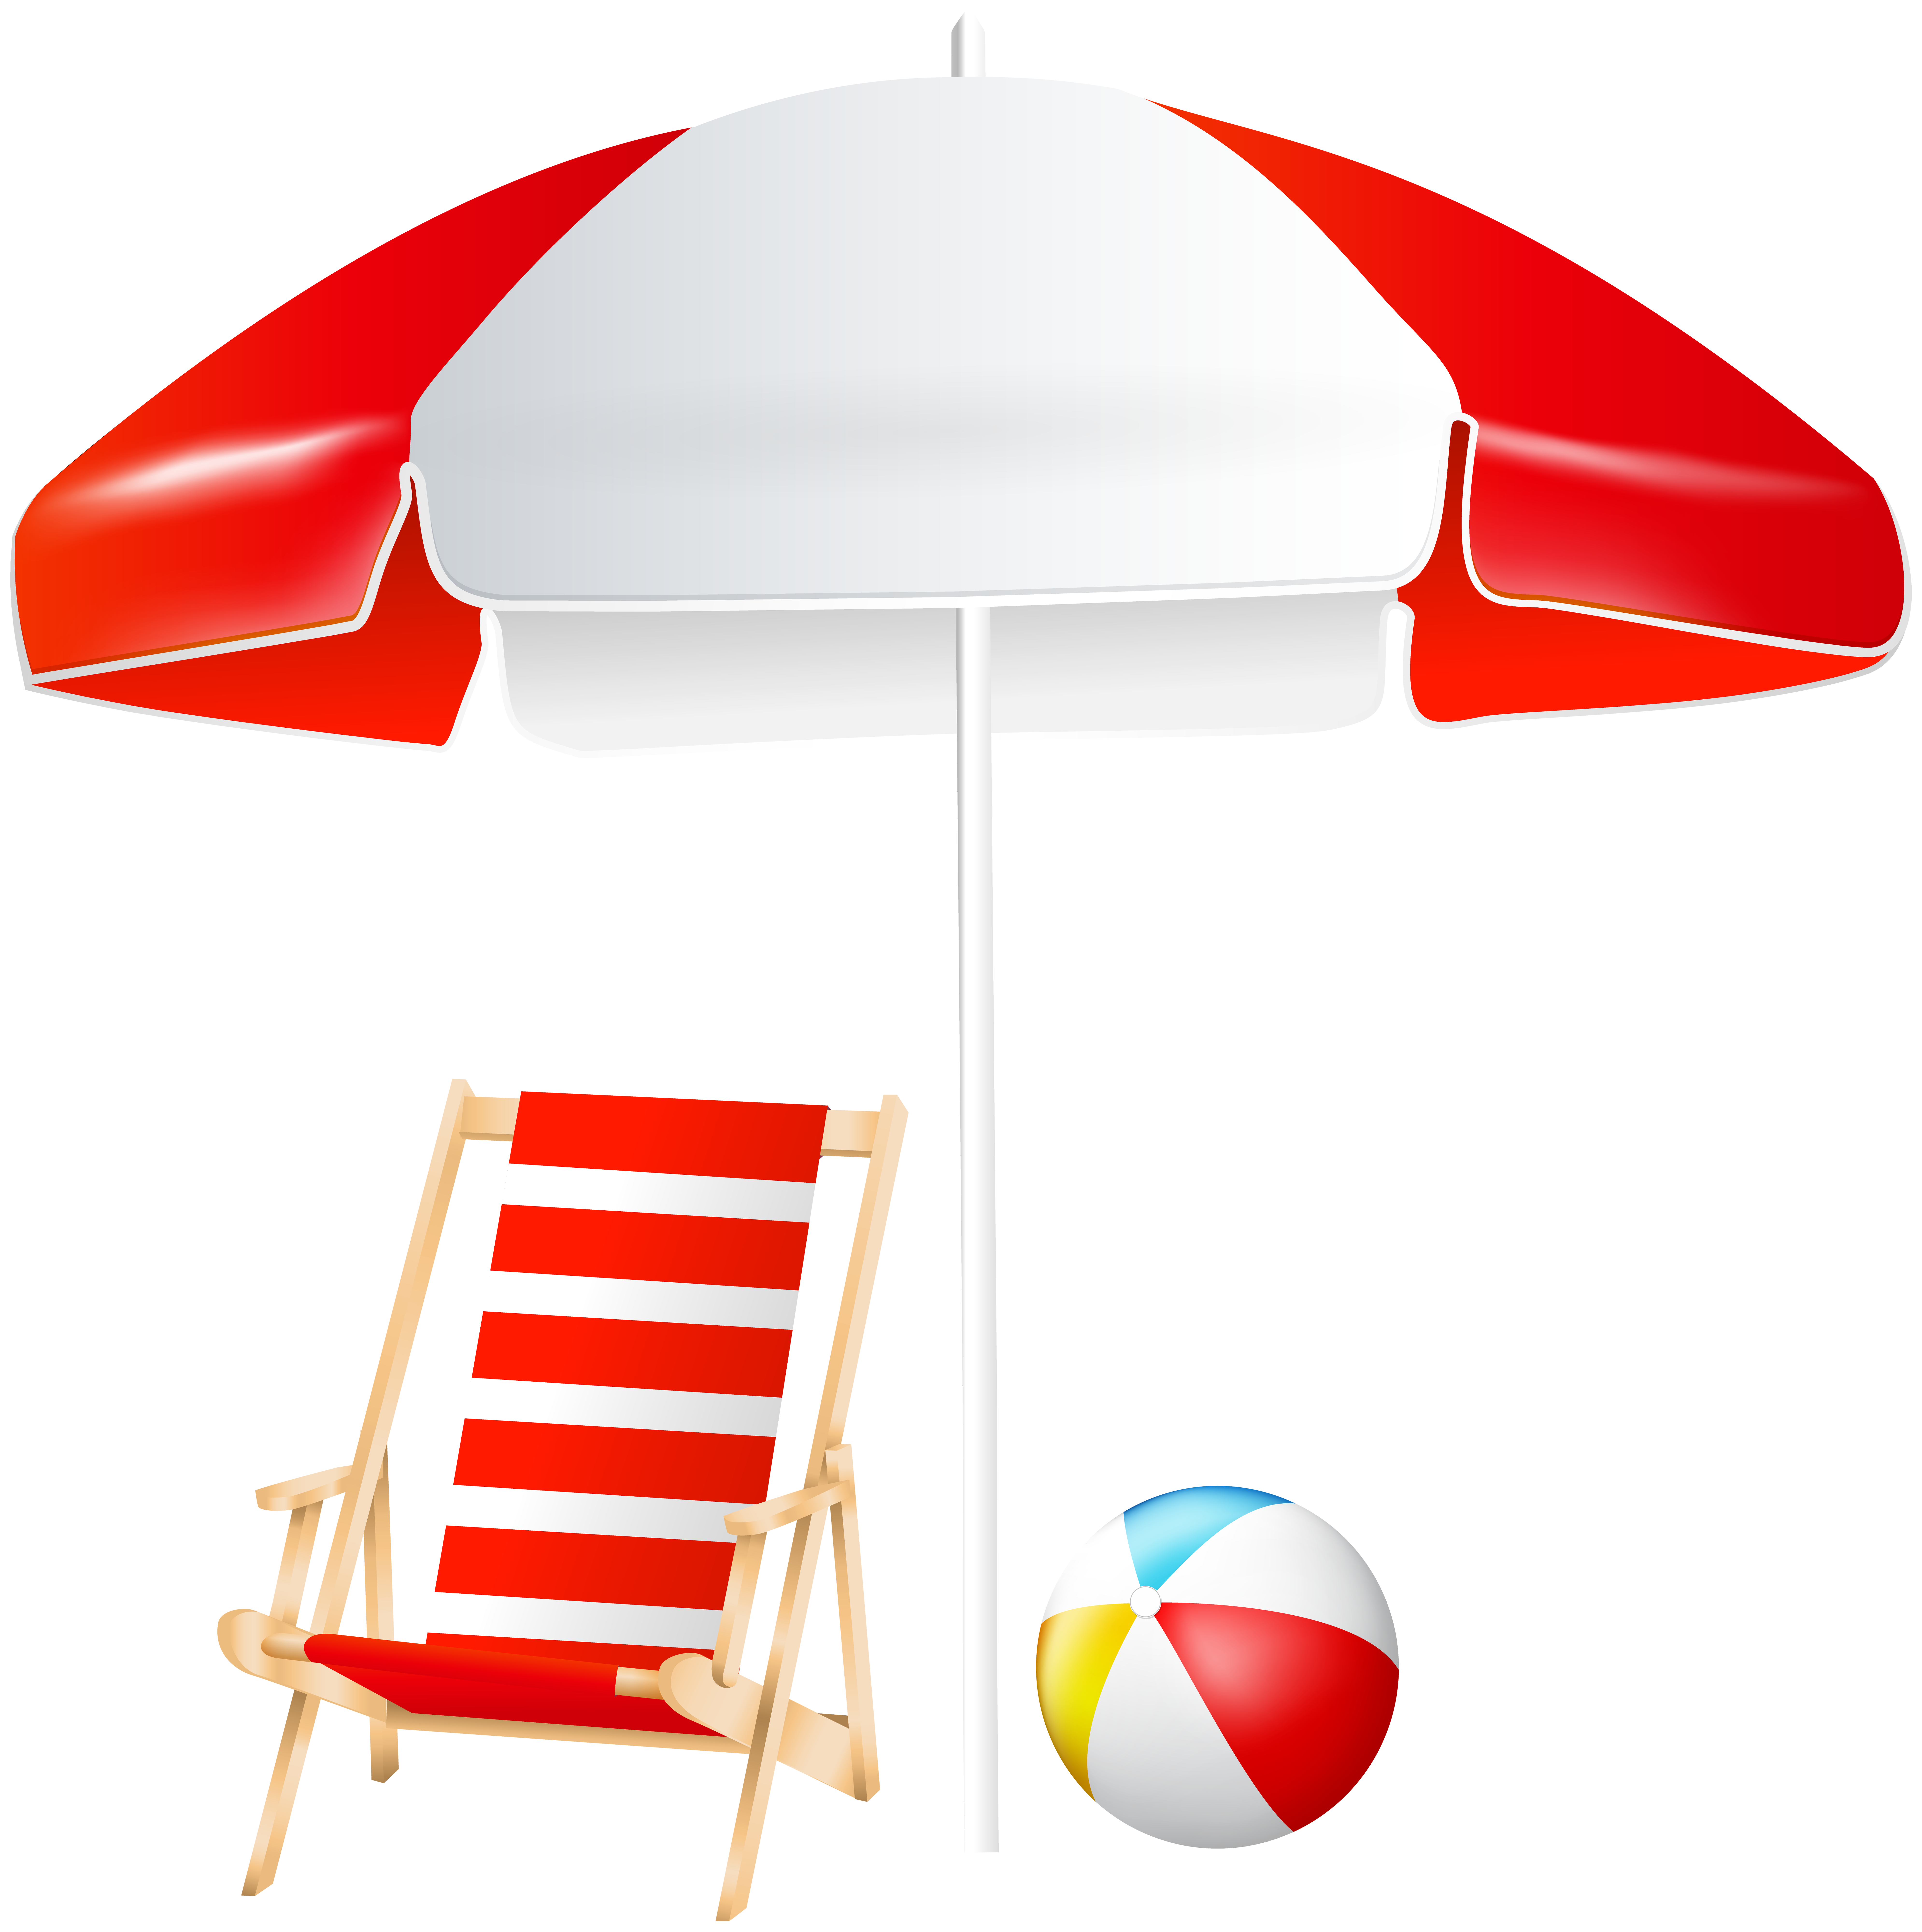 Https Gallery Yopriceville Com Free Clipart Pictures Summer Vacation Png Beach Umbrella Chair And Ball Png Clip Art Im Beach Umbrella Umbrella Chair Clip Art